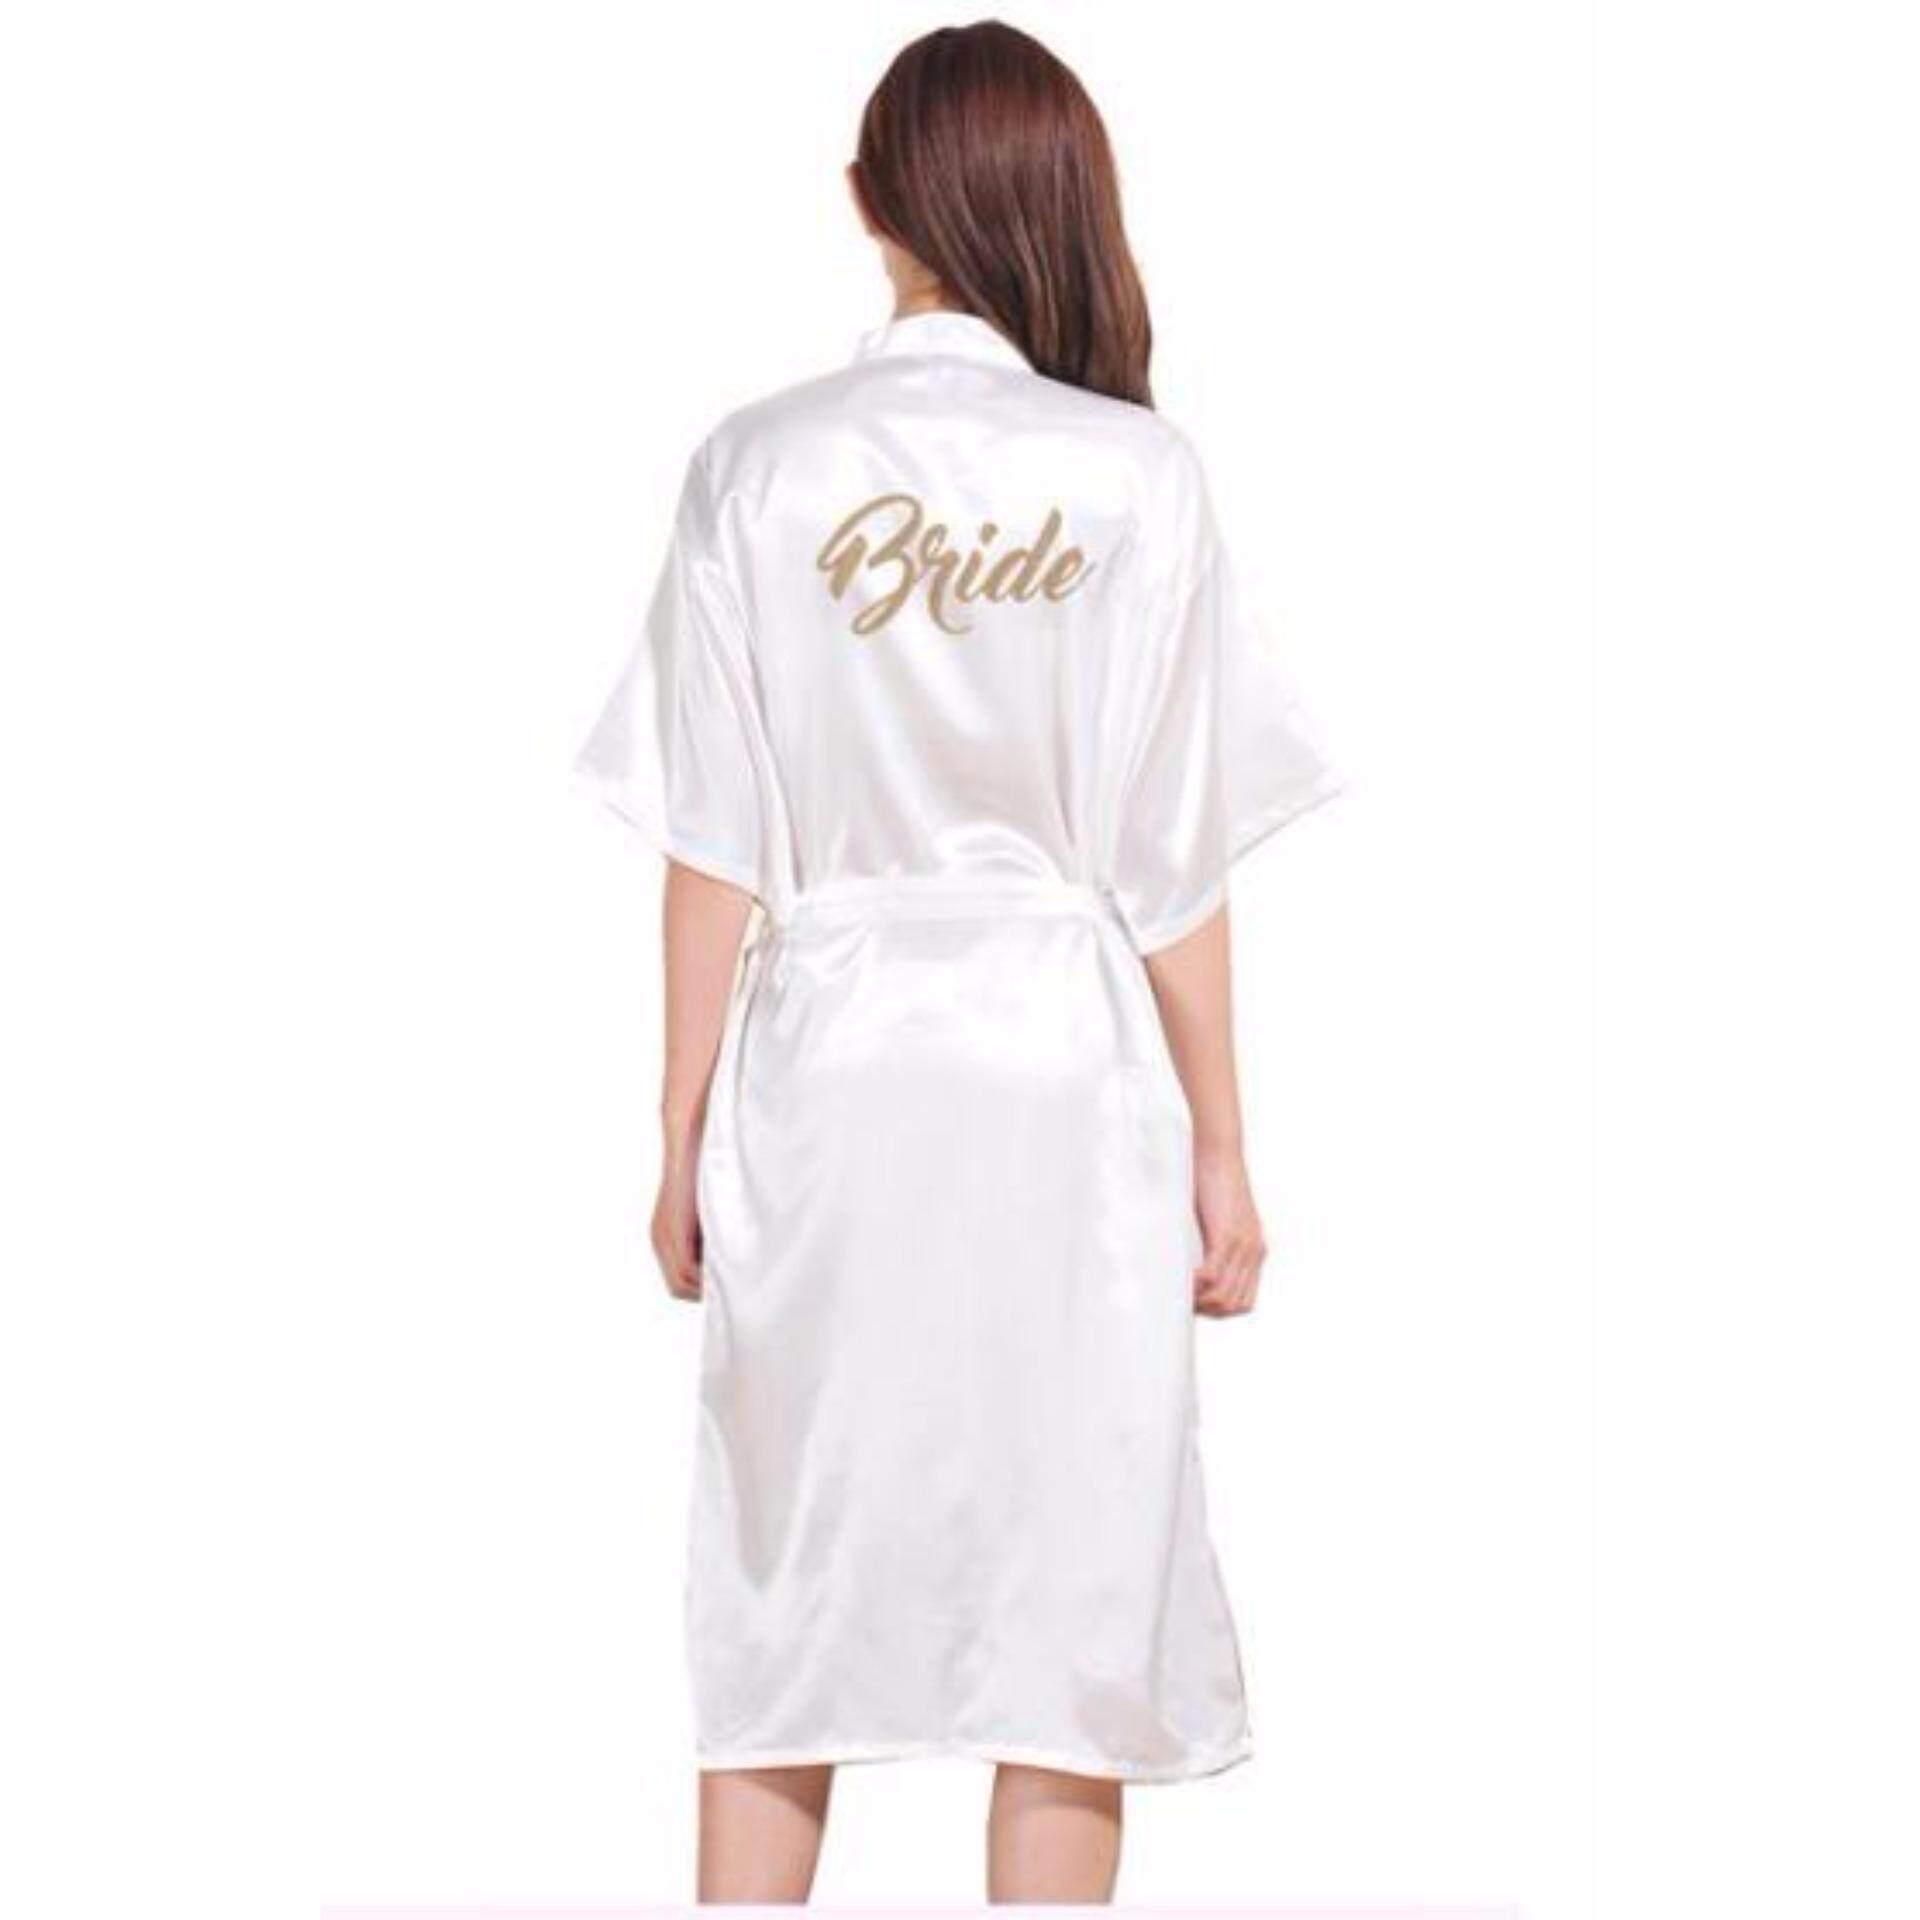 Bathrobe for sale - Bathrobes prices, brands & review in Philippines ...